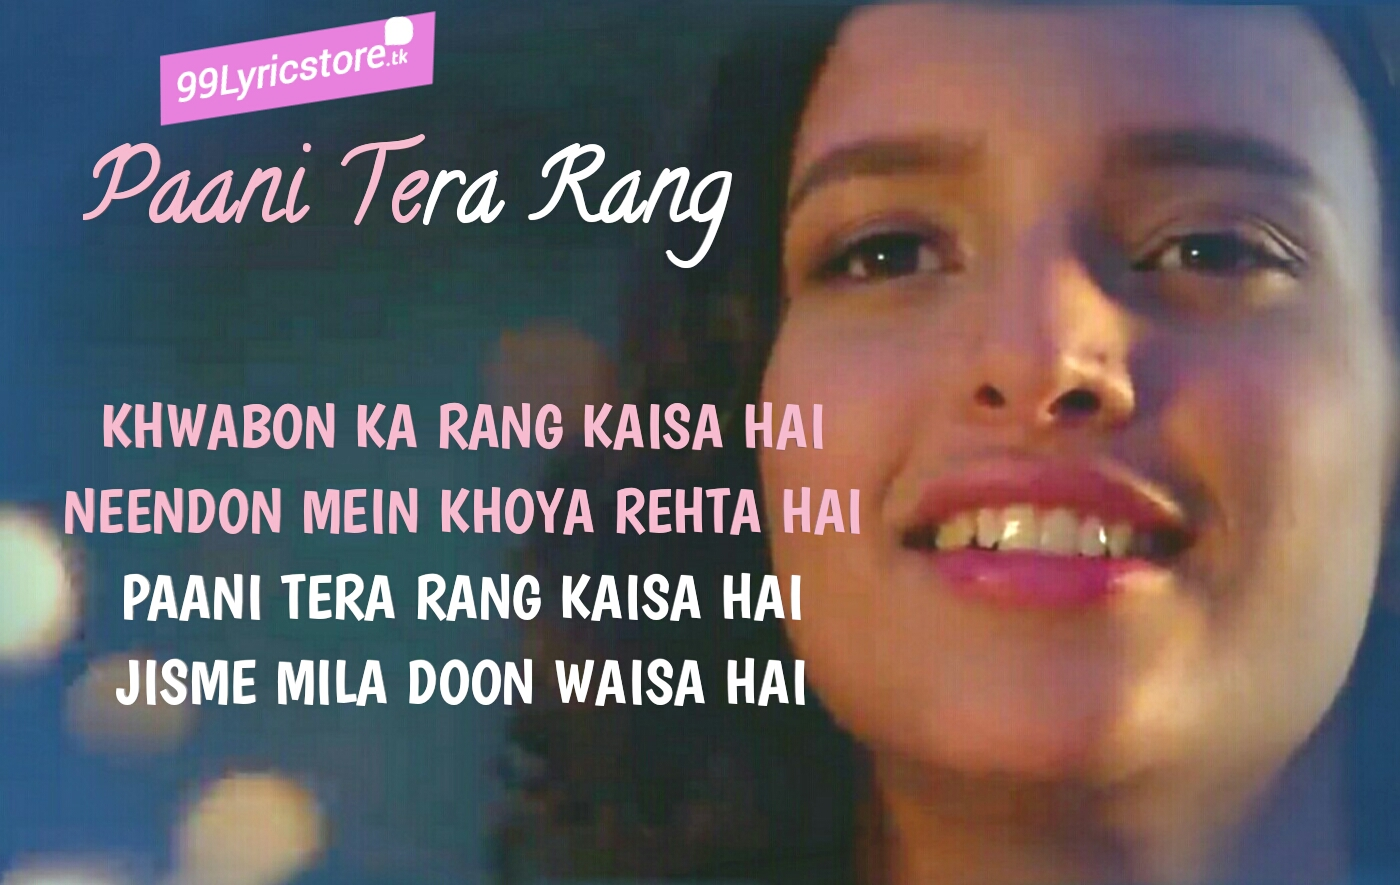 Paani Tera Rang Lyrics, Paani tera rang jyotica tangari song lyrics, paani Tera Rang Tripti Dimri Images, Jyotica tangari song paani tera rang Lyrics, love song lyrics, love song images, love quotes images in Hindi, Tripti Dimri images paani Tera rang